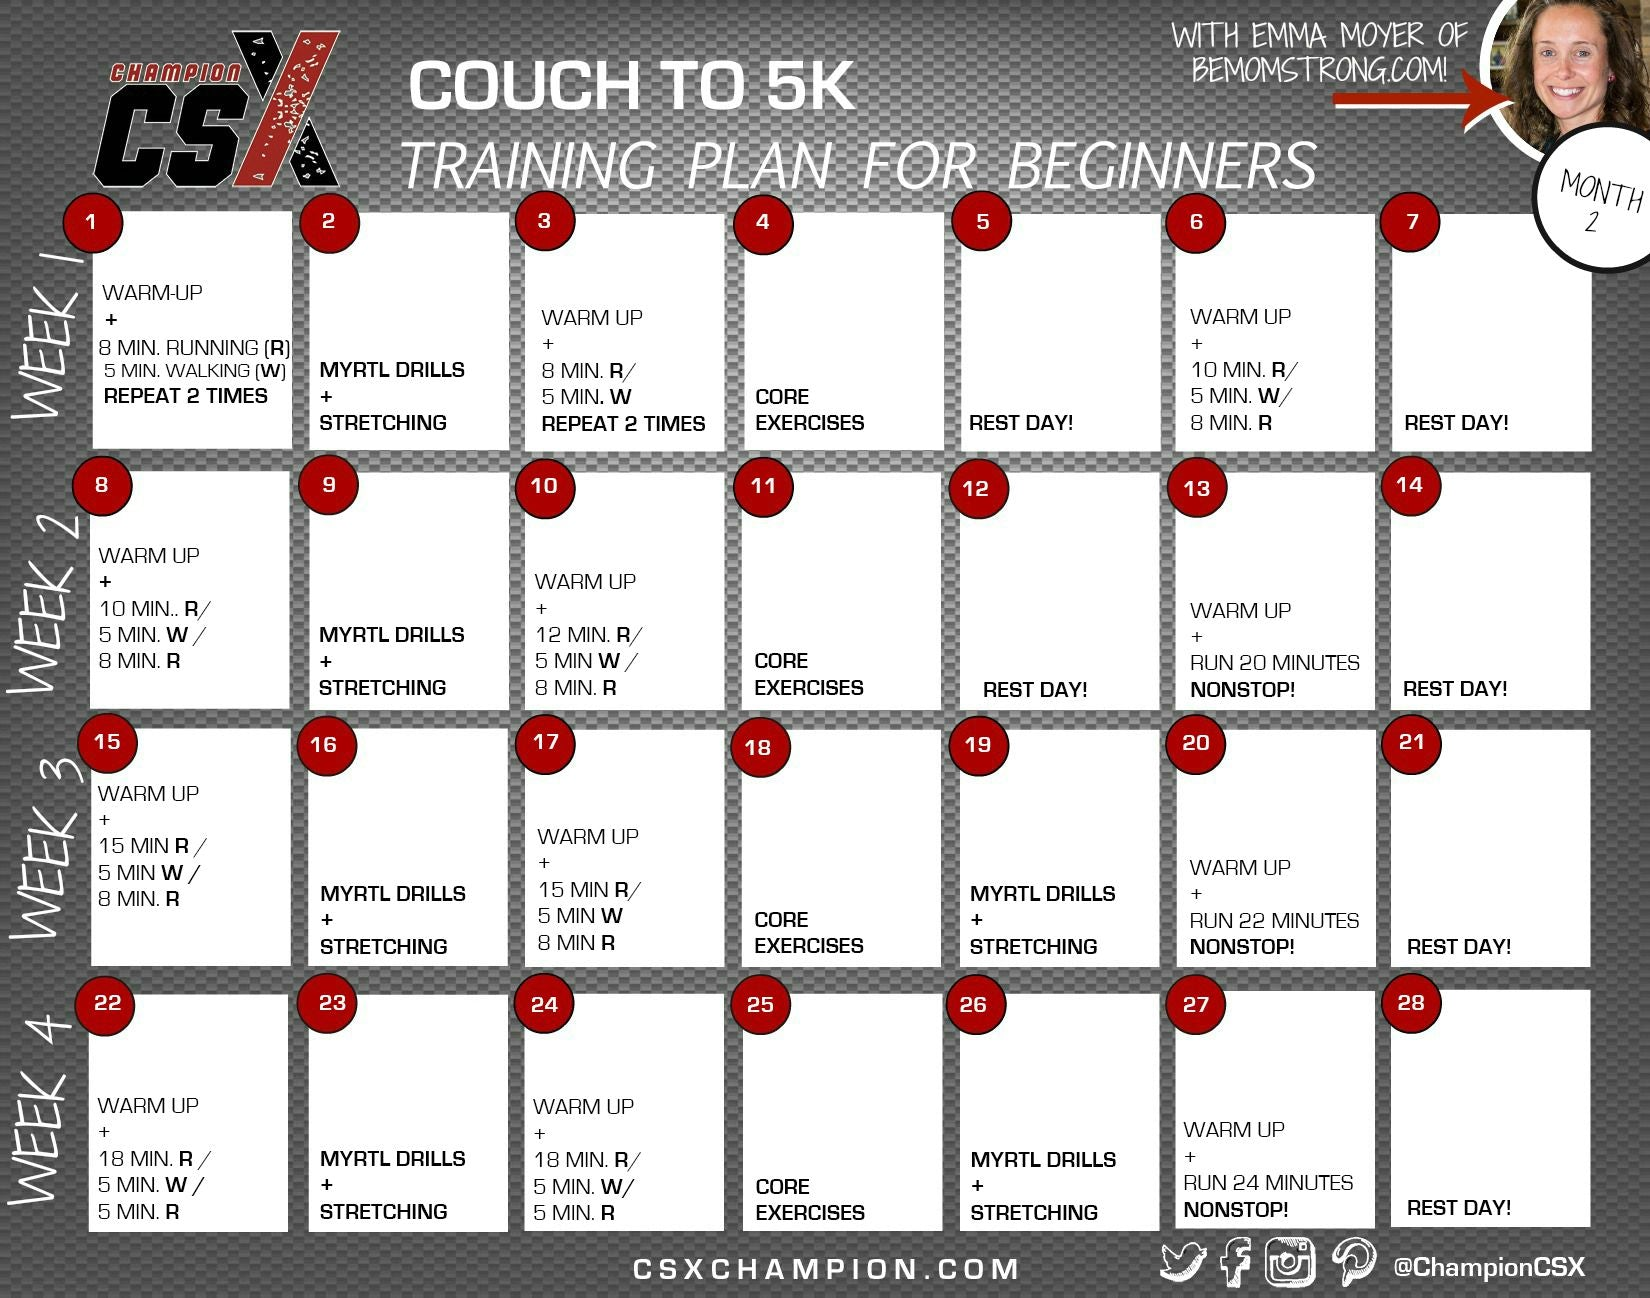 This month, we will continue with a similar pattern, but add some more  advanced strength and flexibility moves, as well as longer running  intervals.